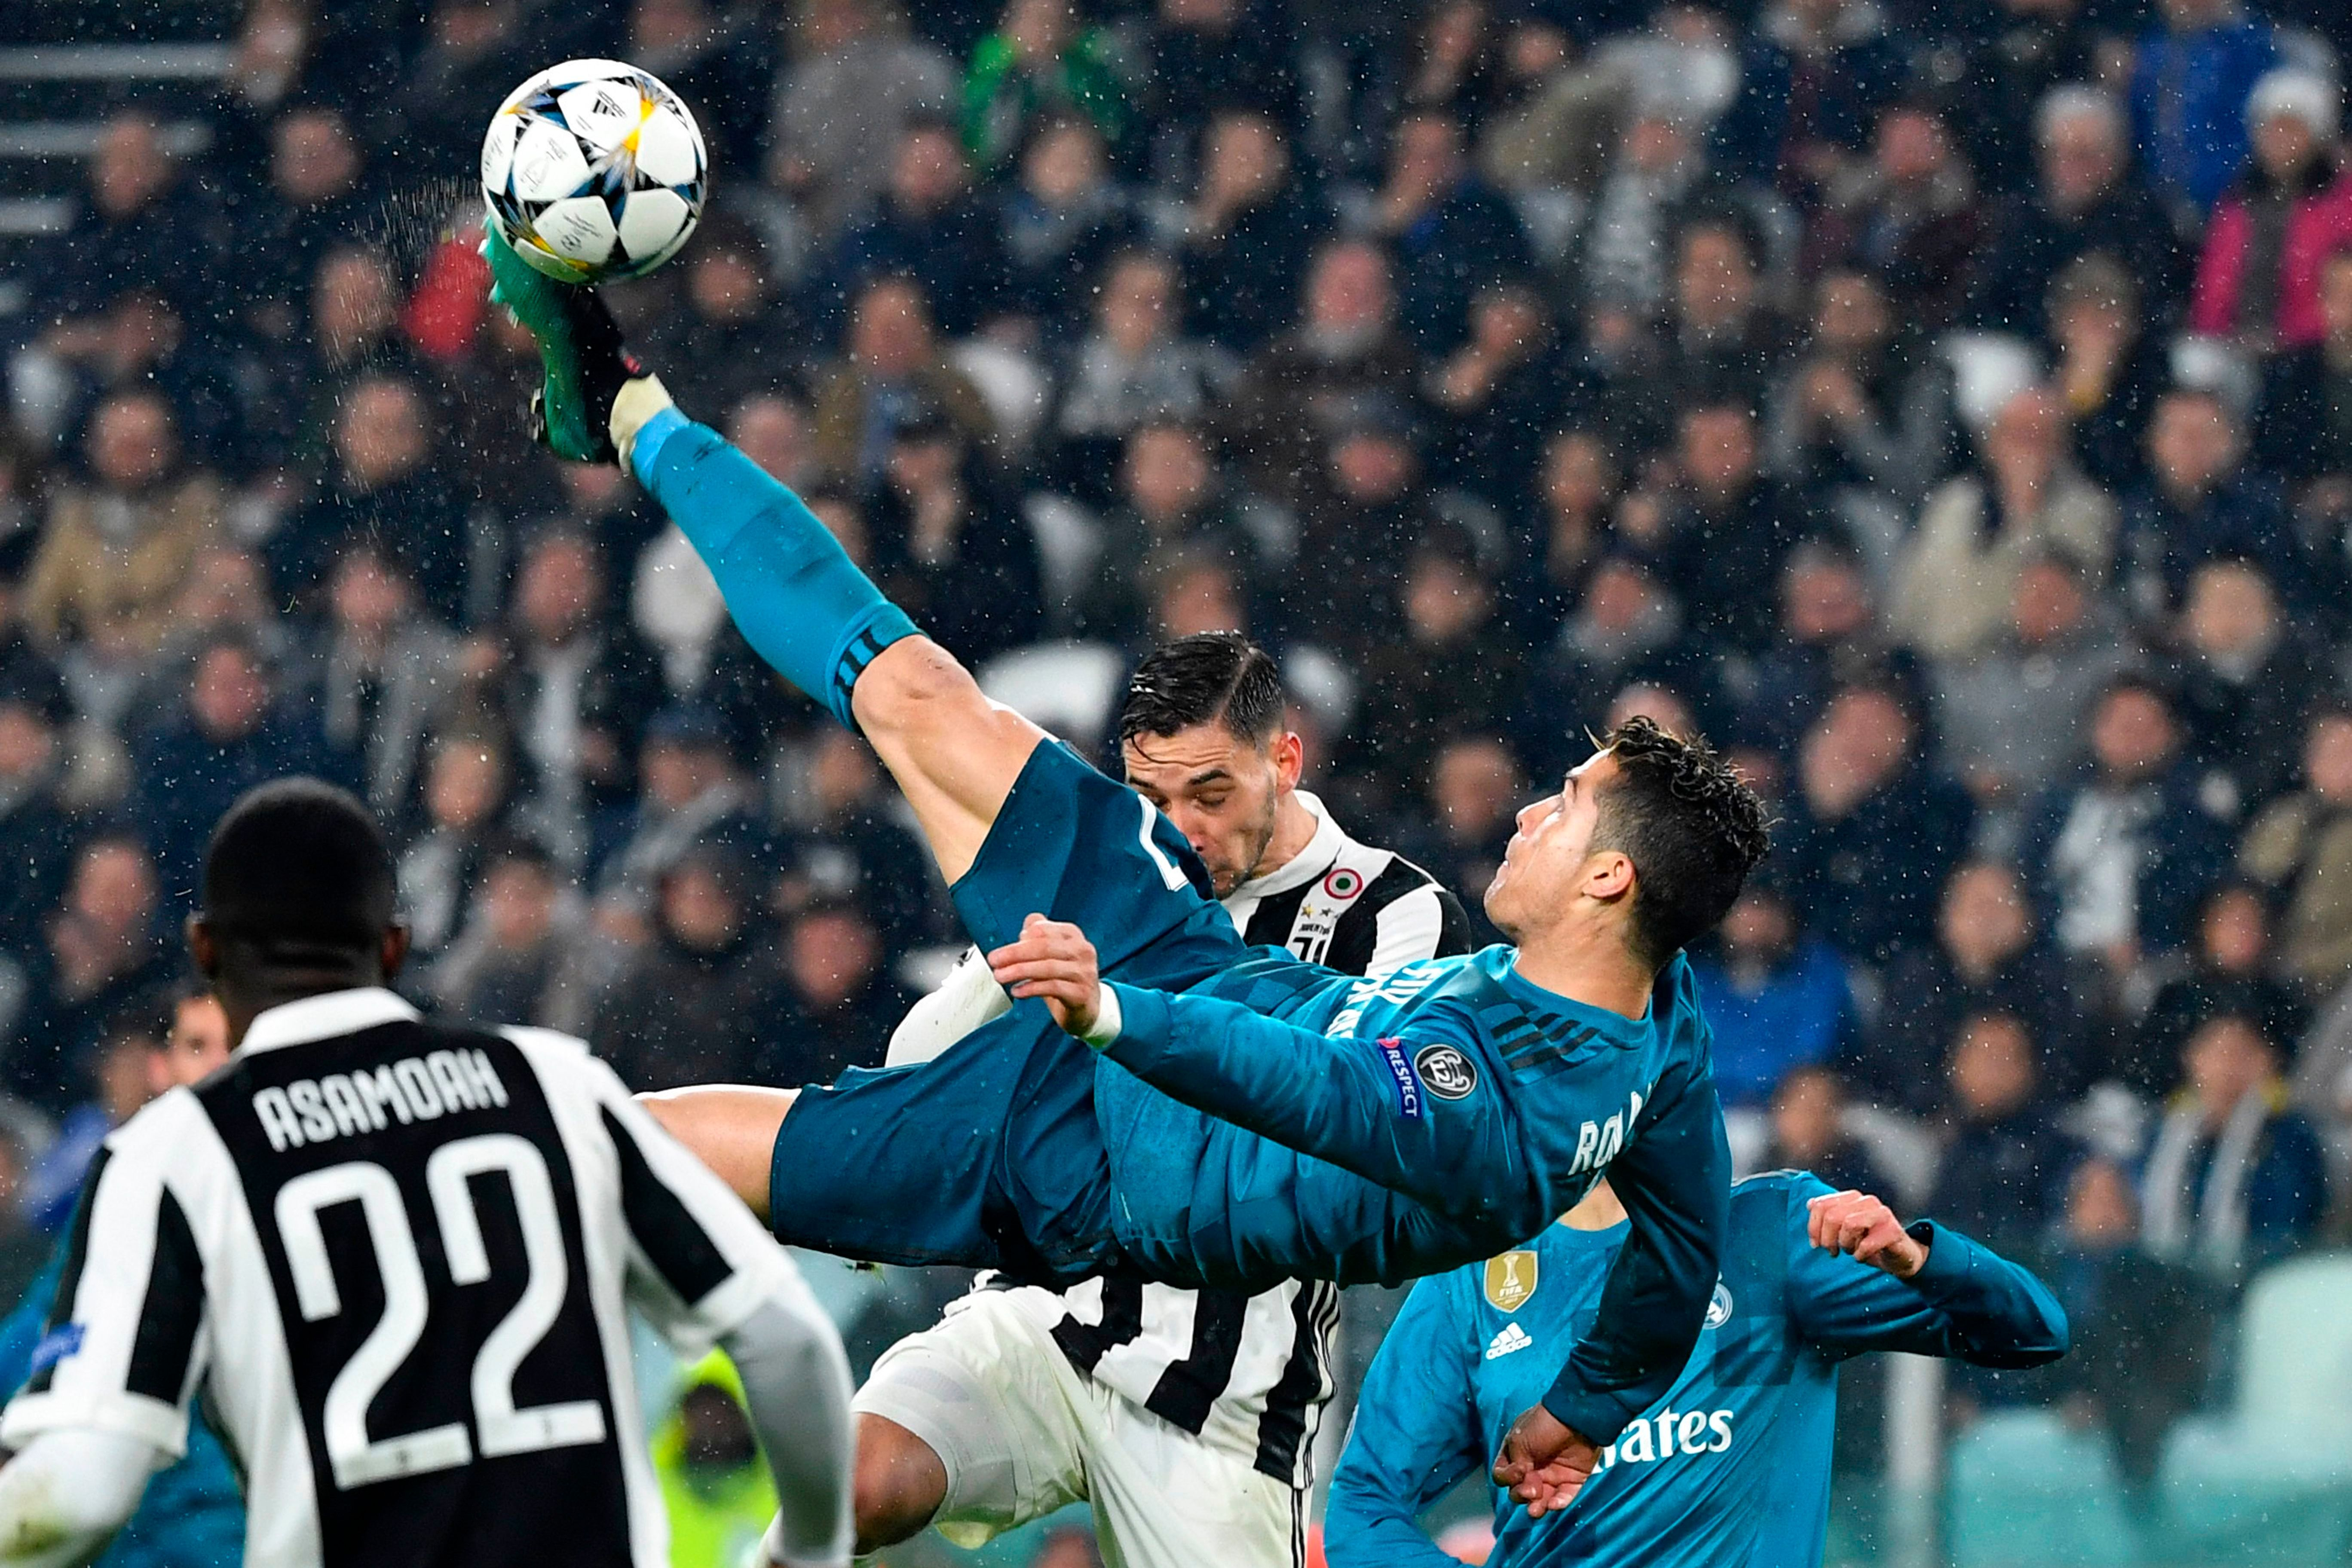 Real Madrid's Portuguese forward Cristiano Ronaldo (C) overhead kicks and scores during the UEFA Champions League quarter-final first leg football match between Juventus and Real Madrid at the Allianz Stadium in Turin on April 3, 2018. / AFP PHOTO / Alberto PIZZOLI        (Photo credit should read ALBERTO PIZZOLI/AFP/Getty Images)